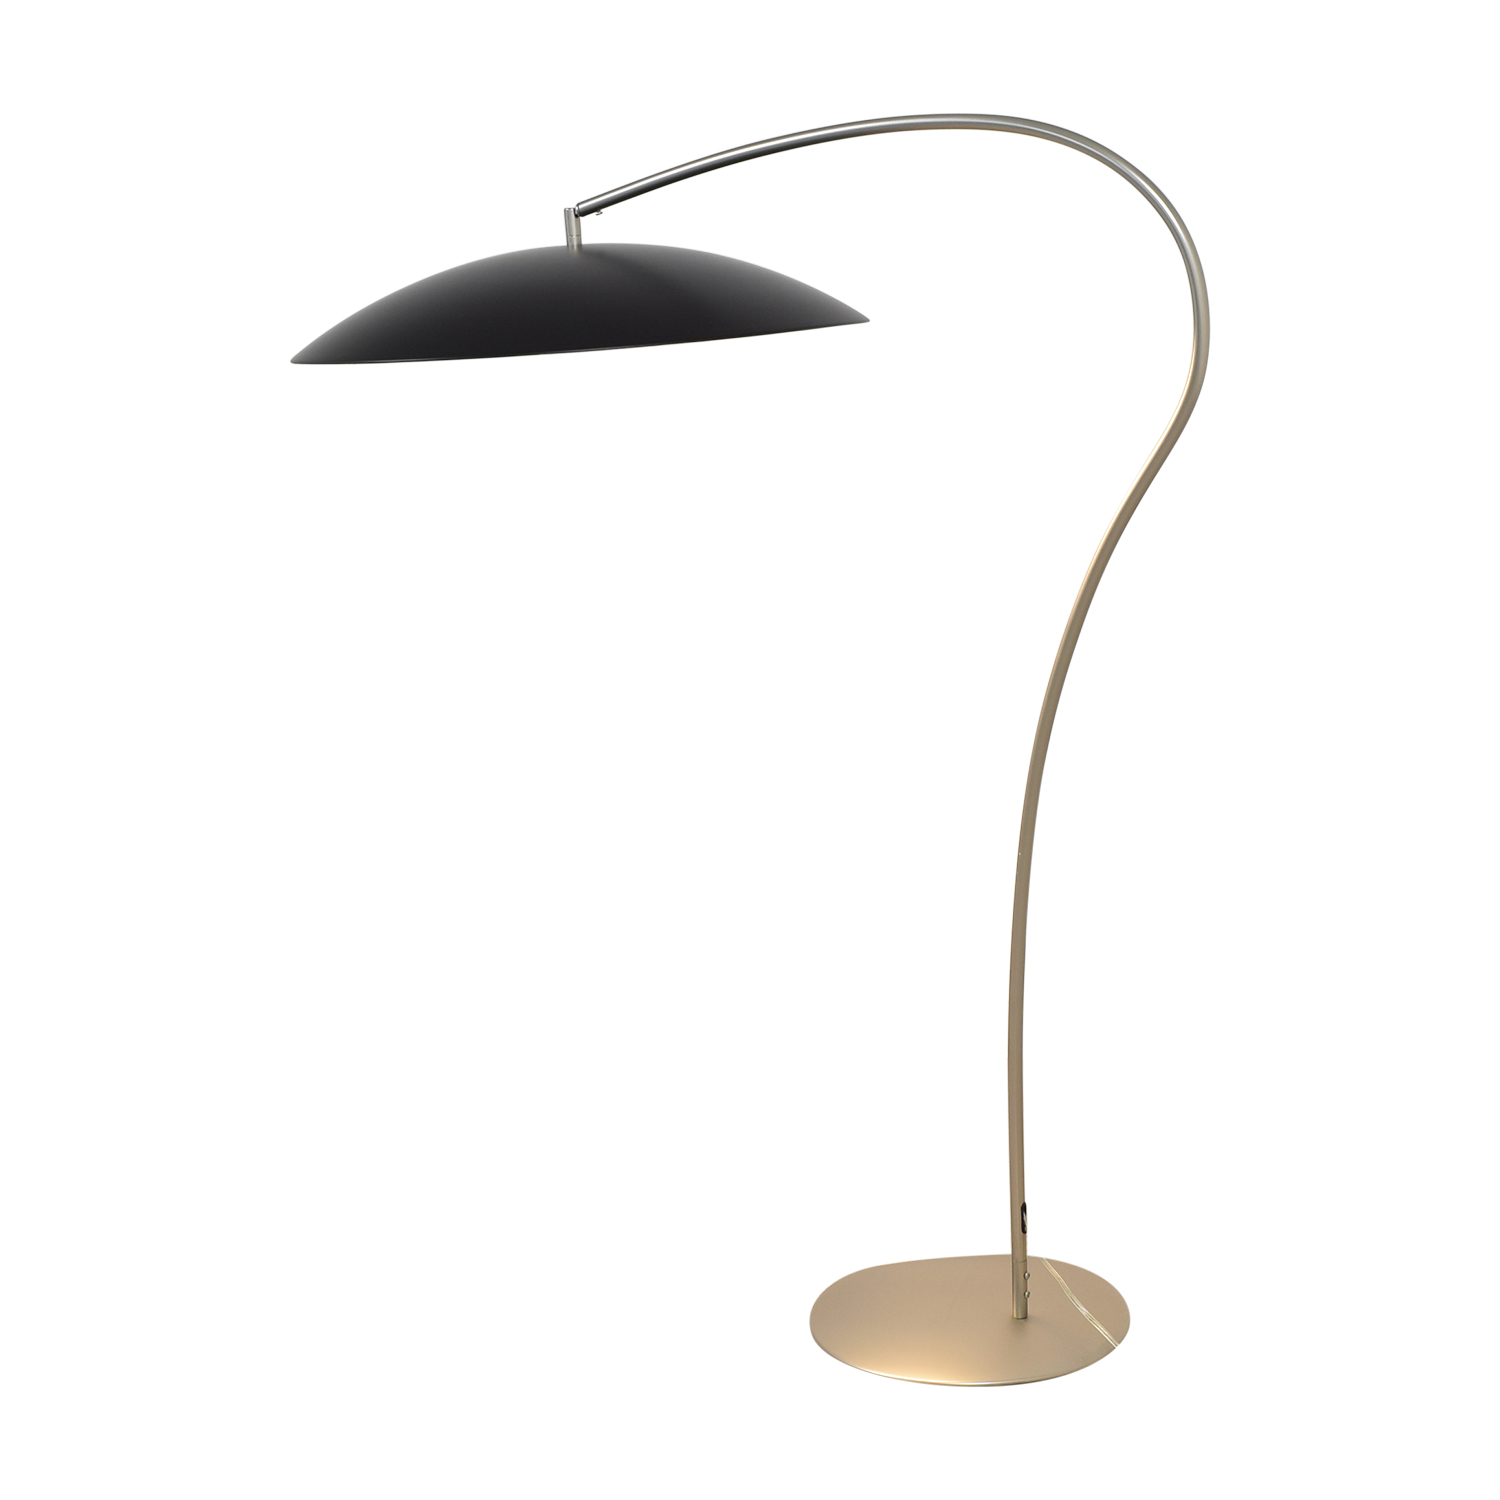 CB2 Atomic Arc Floor Lamp sale